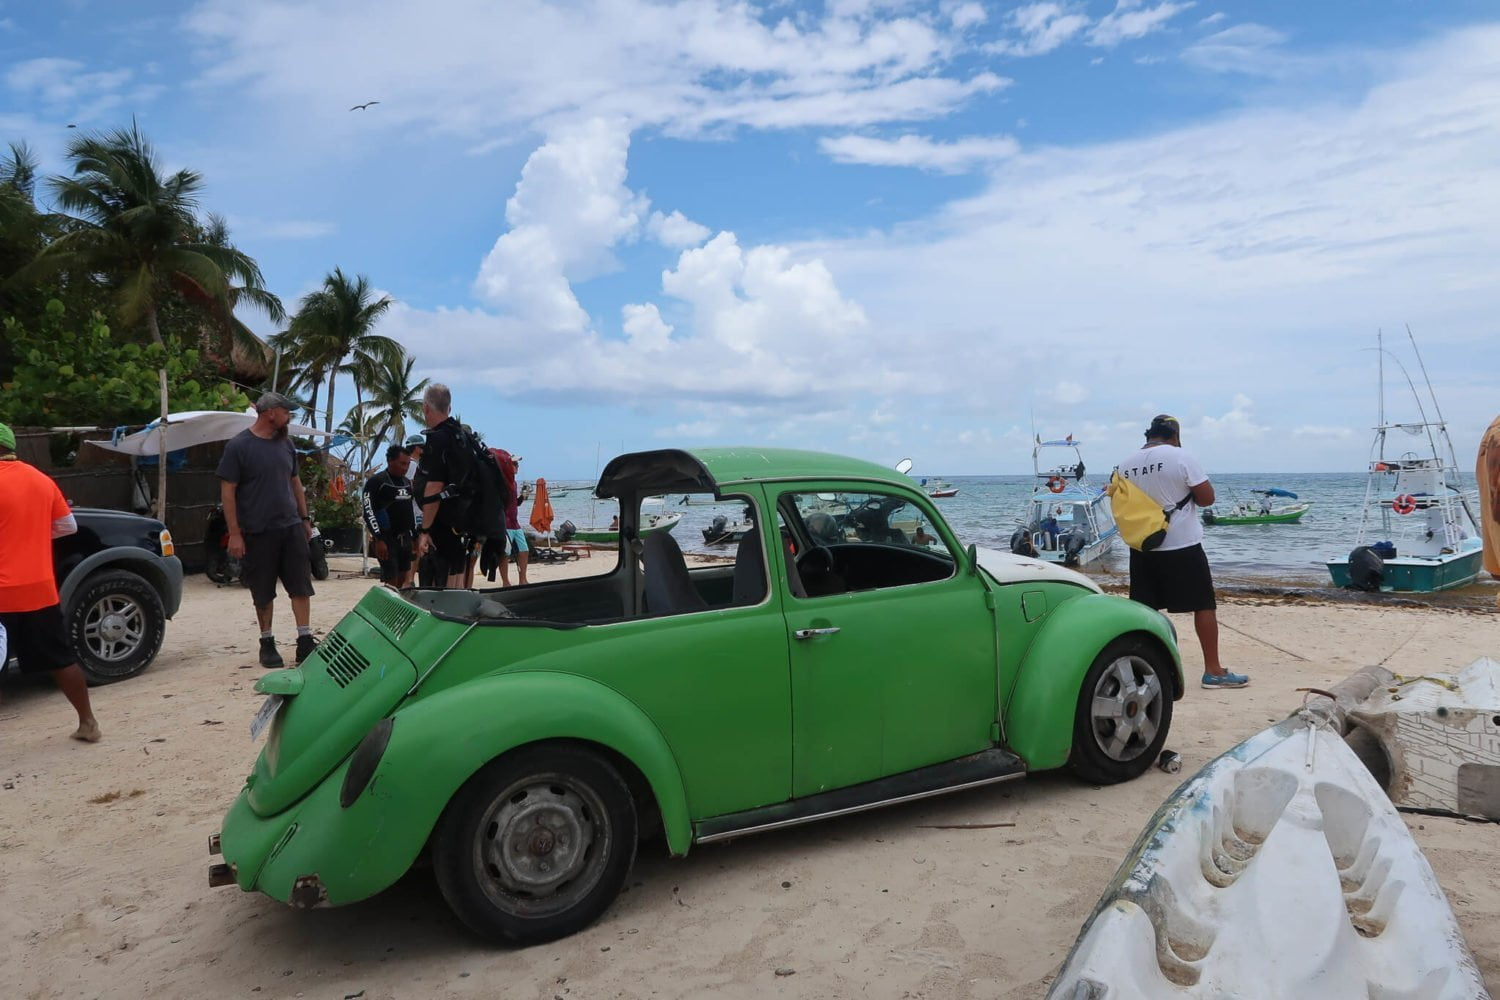 Beetle on Playa del Carmen's beach.